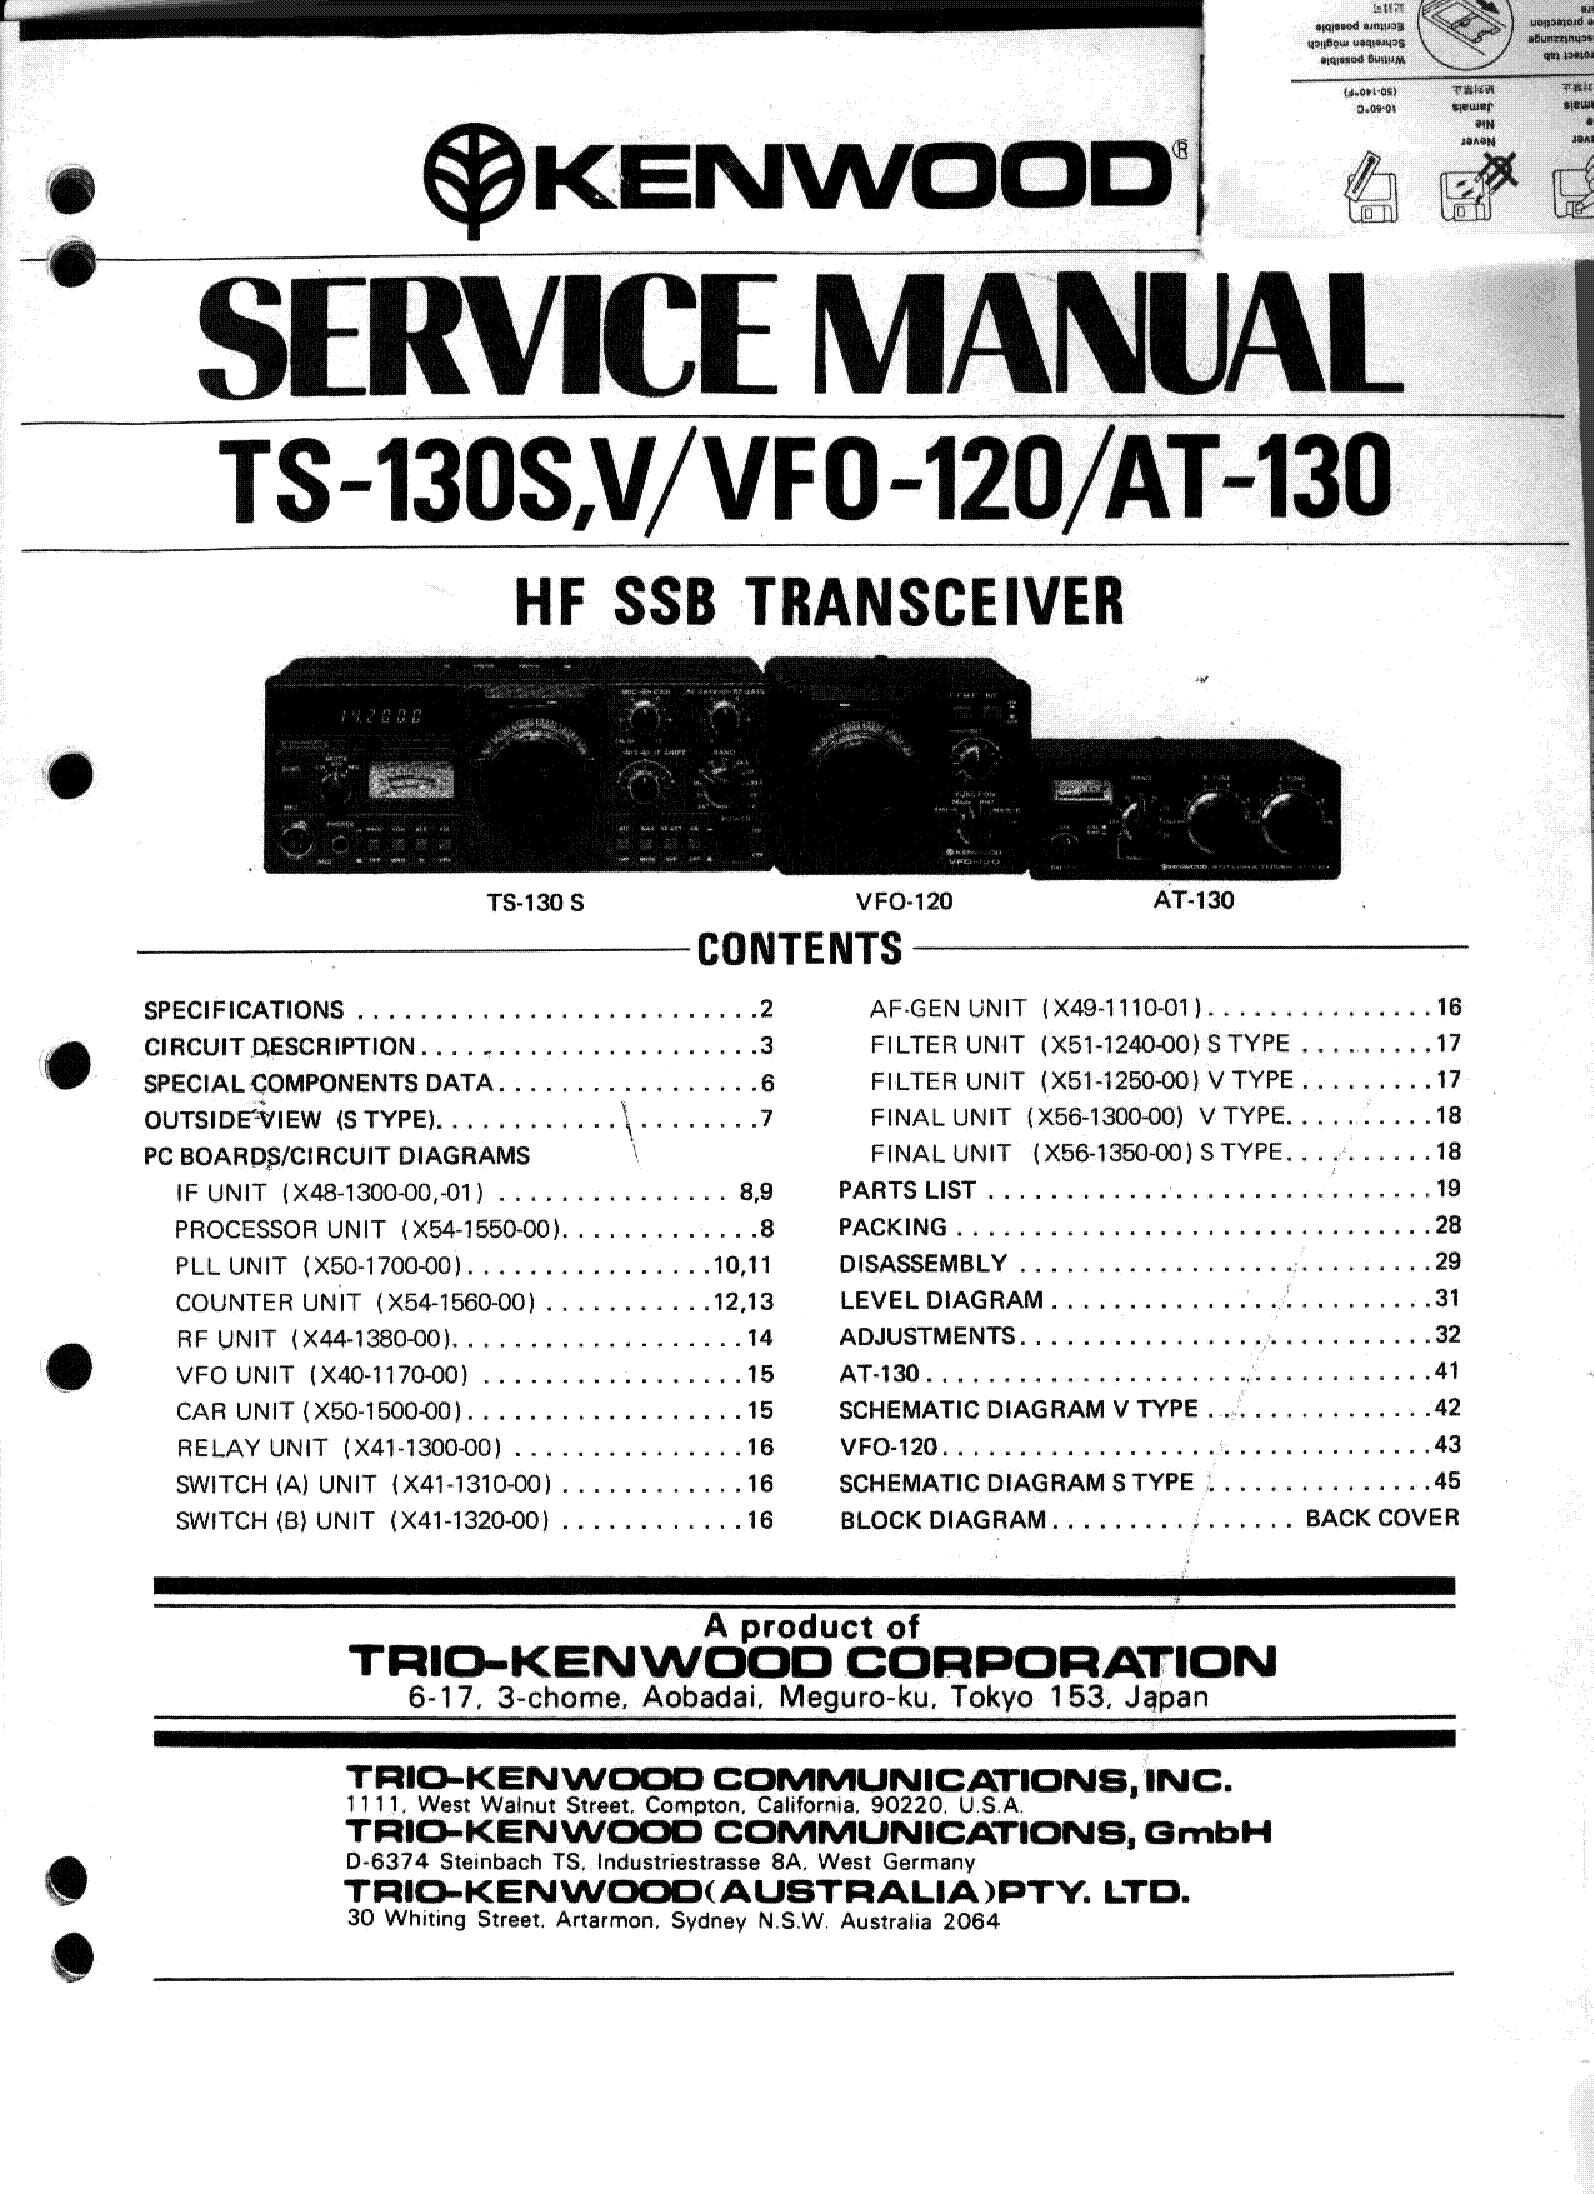 KENWOOD TS-130S-V VFO-120 AT-130 SM service manual (